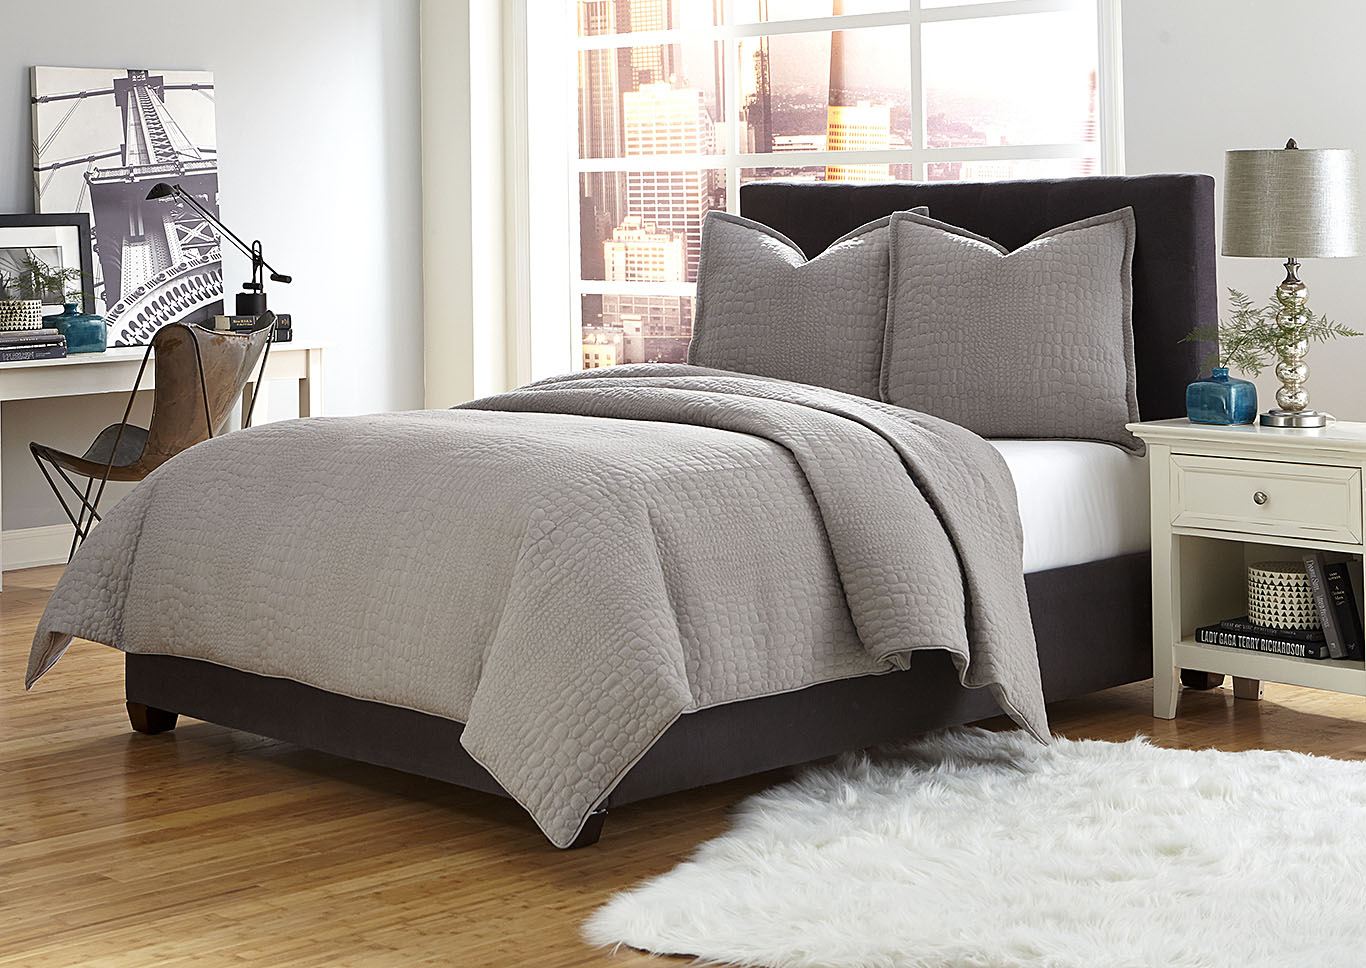 Trent 3 Piece Gray King Coverlet Set,AICO